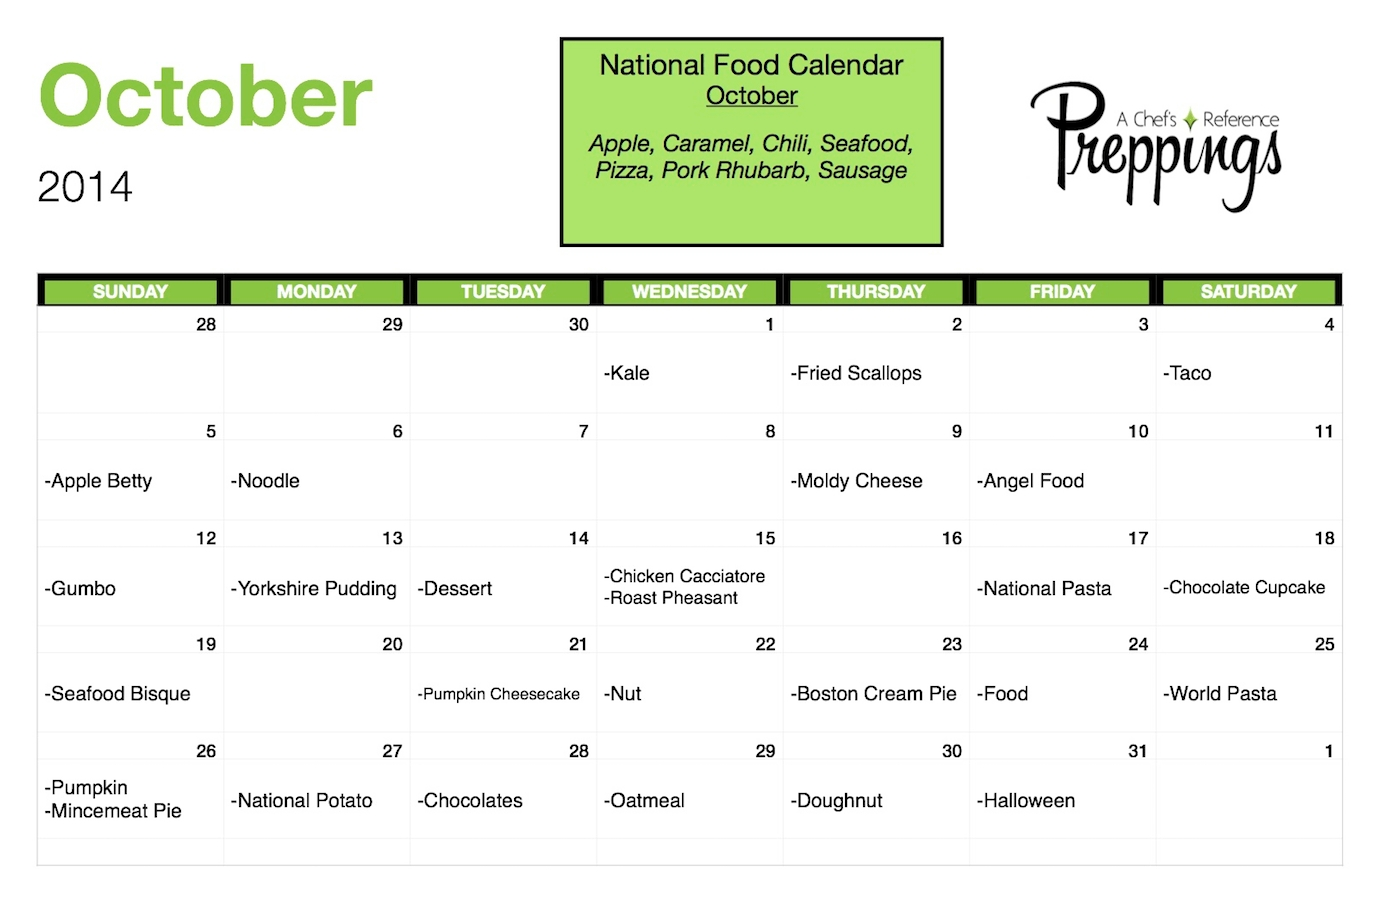 National Food July Calendar Day intended for July National Food Day Calendar